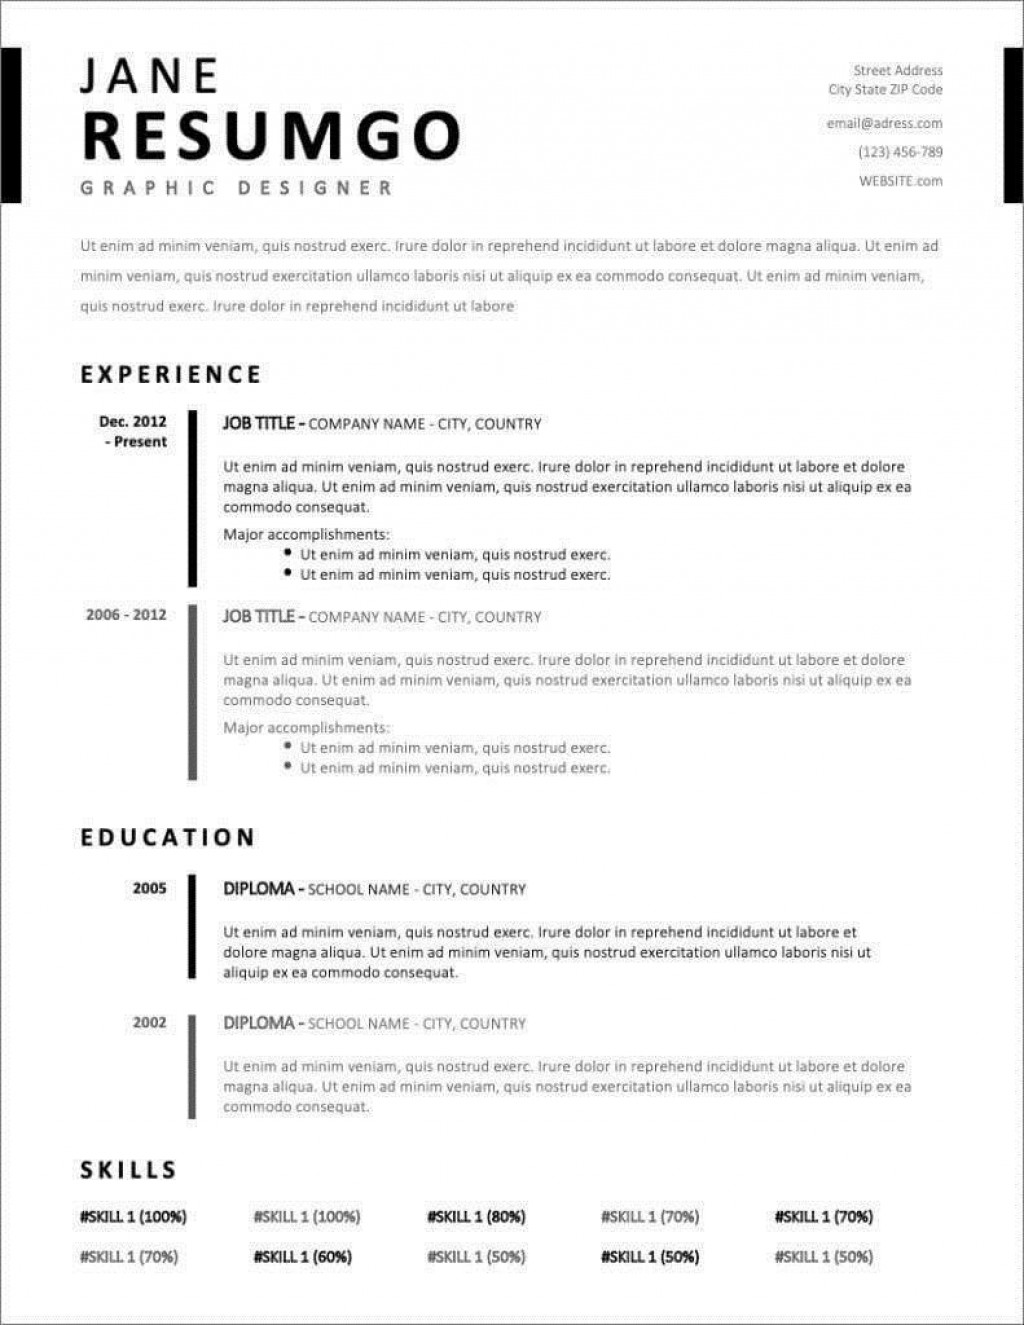 002 Excellent Download Resume Example Free Picture  Hr Sample Visual CvLarge